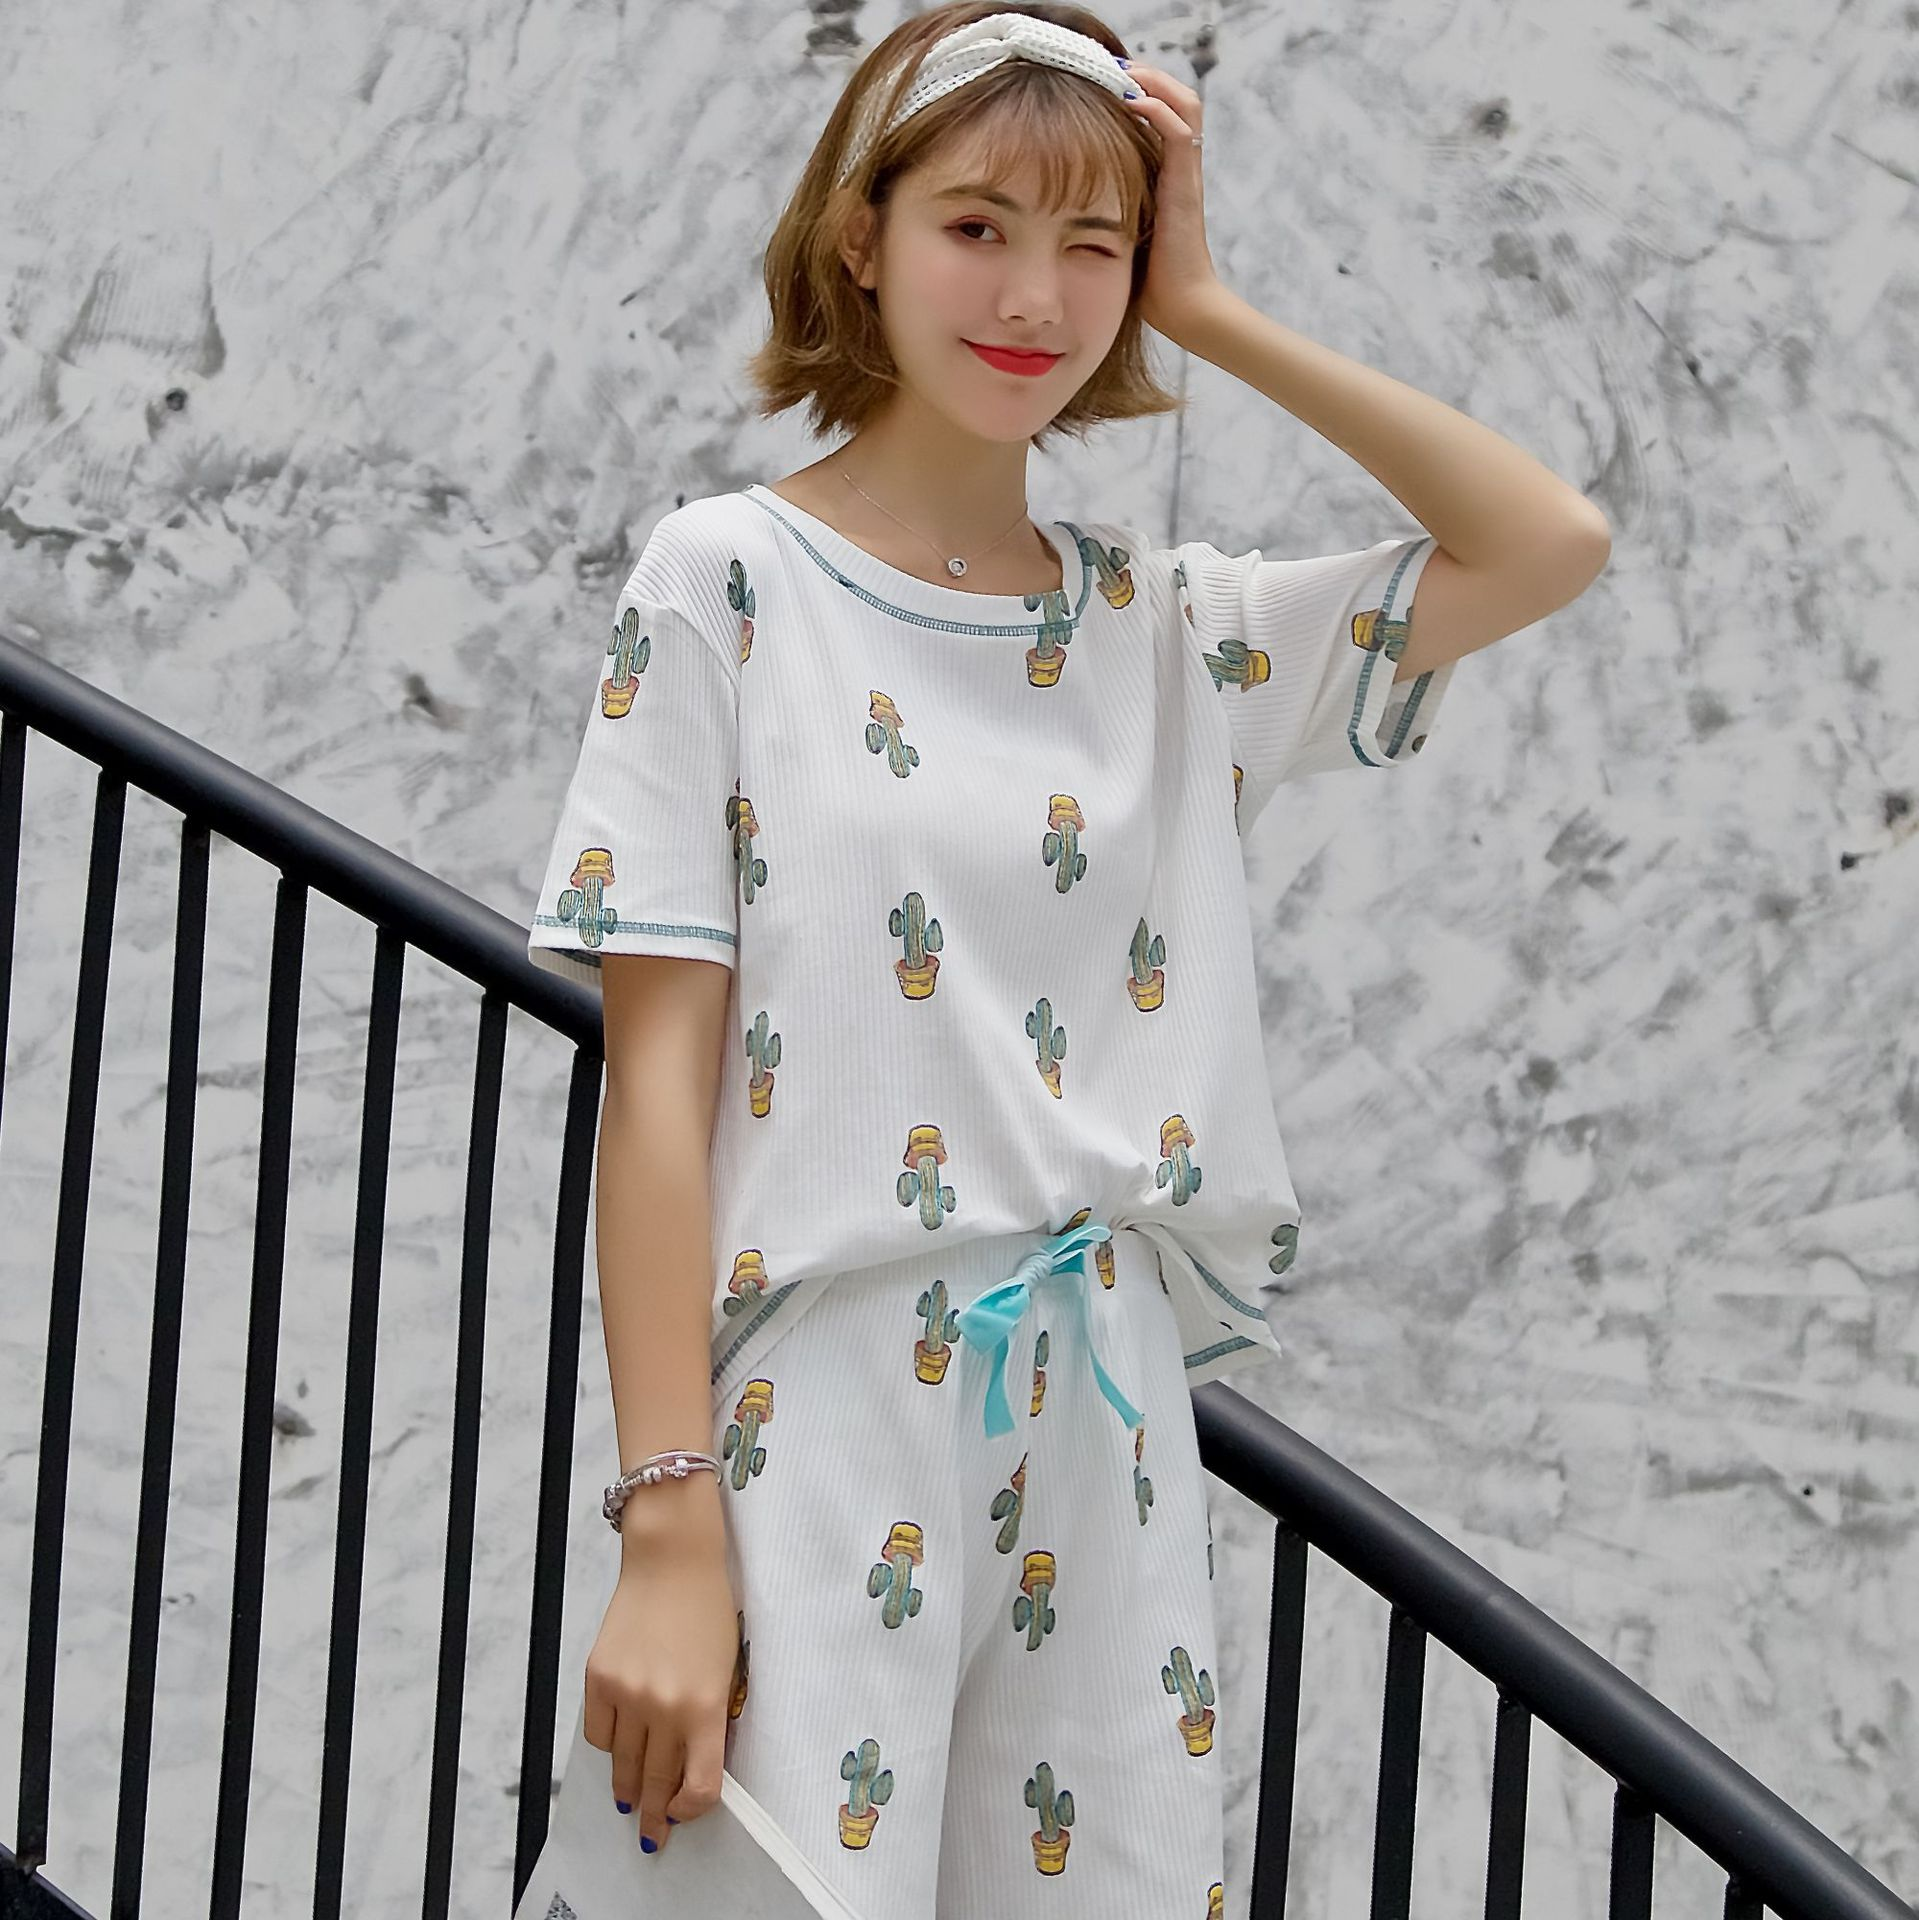 2019 Pure Cotton Pajamas Women's Summer Outer Wear Casual Short Sleeve Shorts Cotton Sunken Stripe Cactus Printed Homewear Set